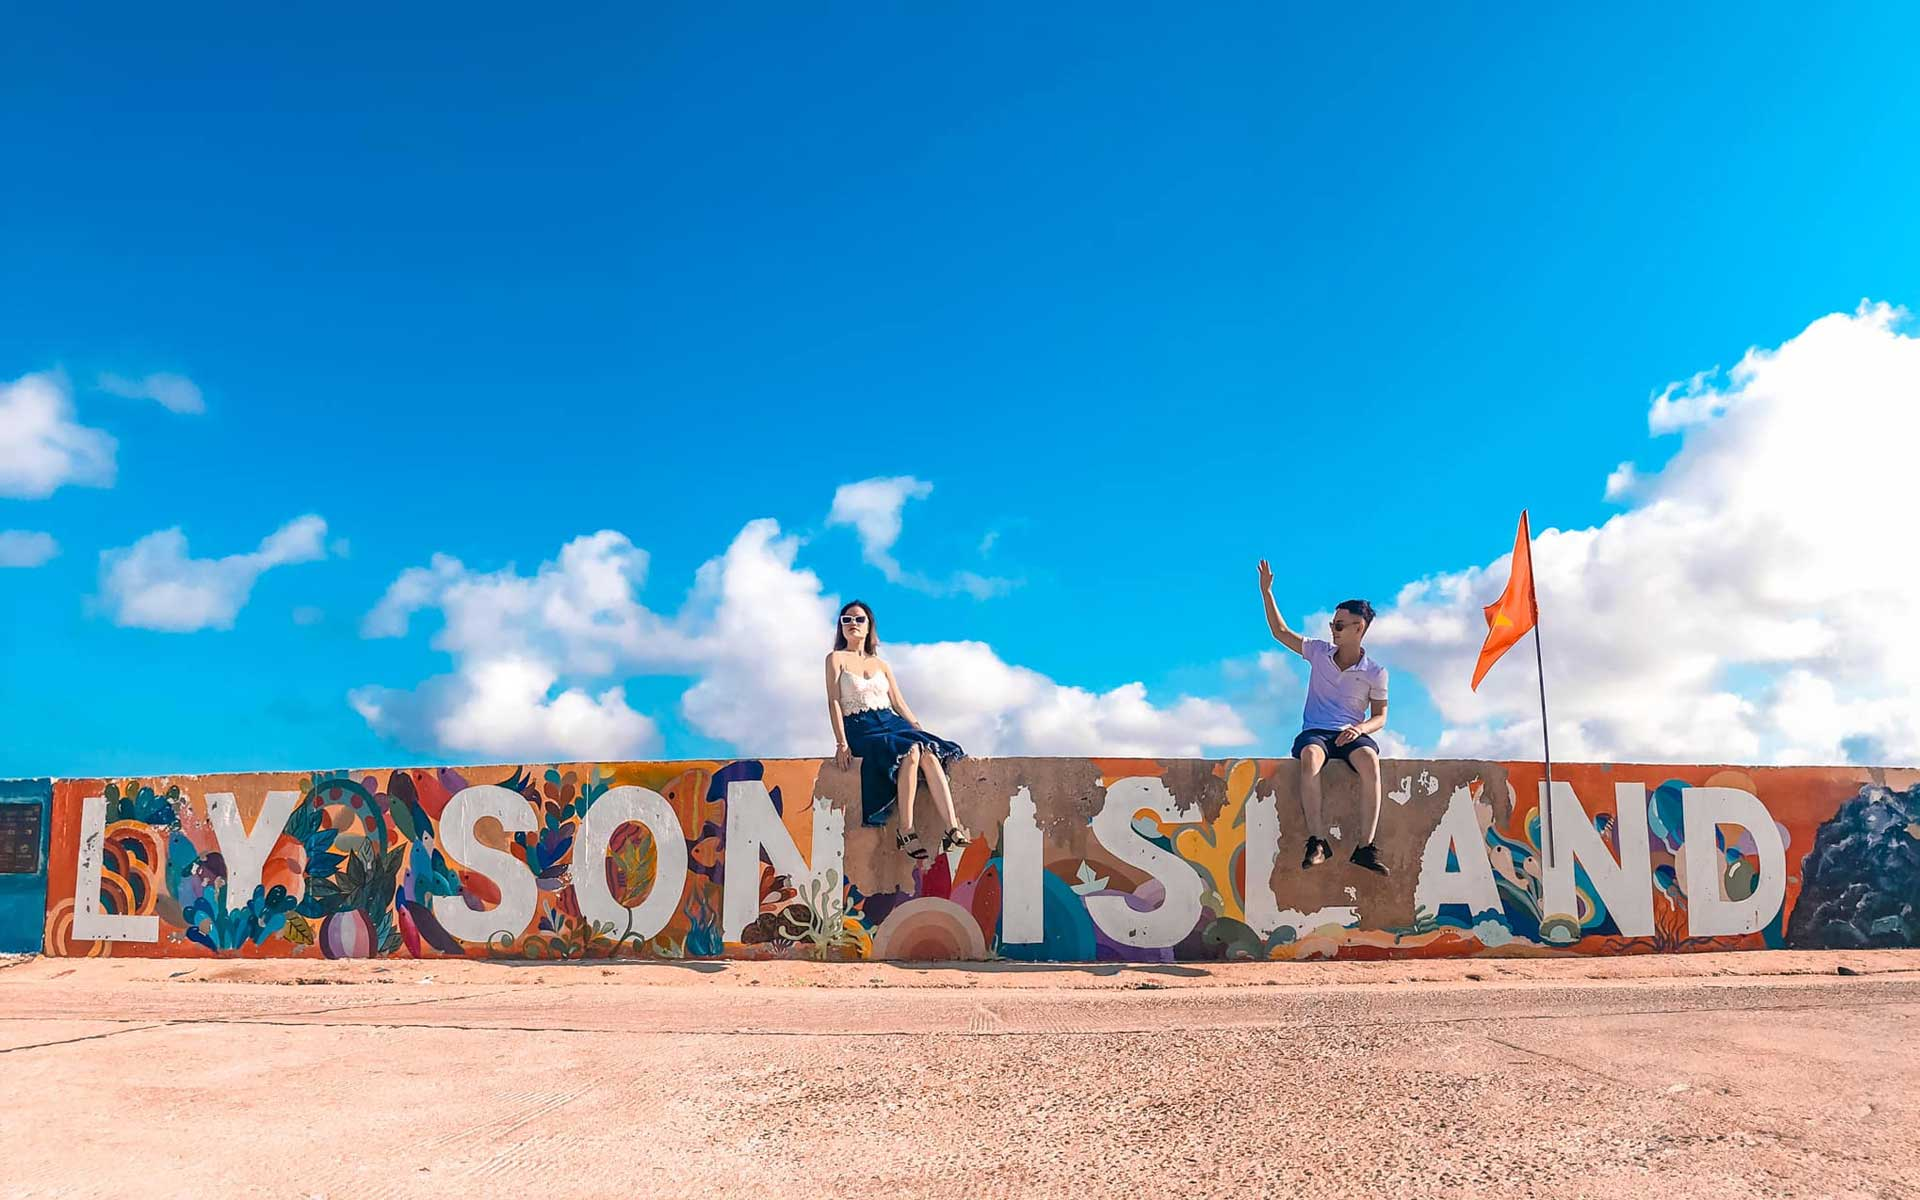 Ly Son island is a district covering around 10 square kilometers, is known as the kingdom of garlic and onions, and it is one of a very few volcanic islands in Vietnam.